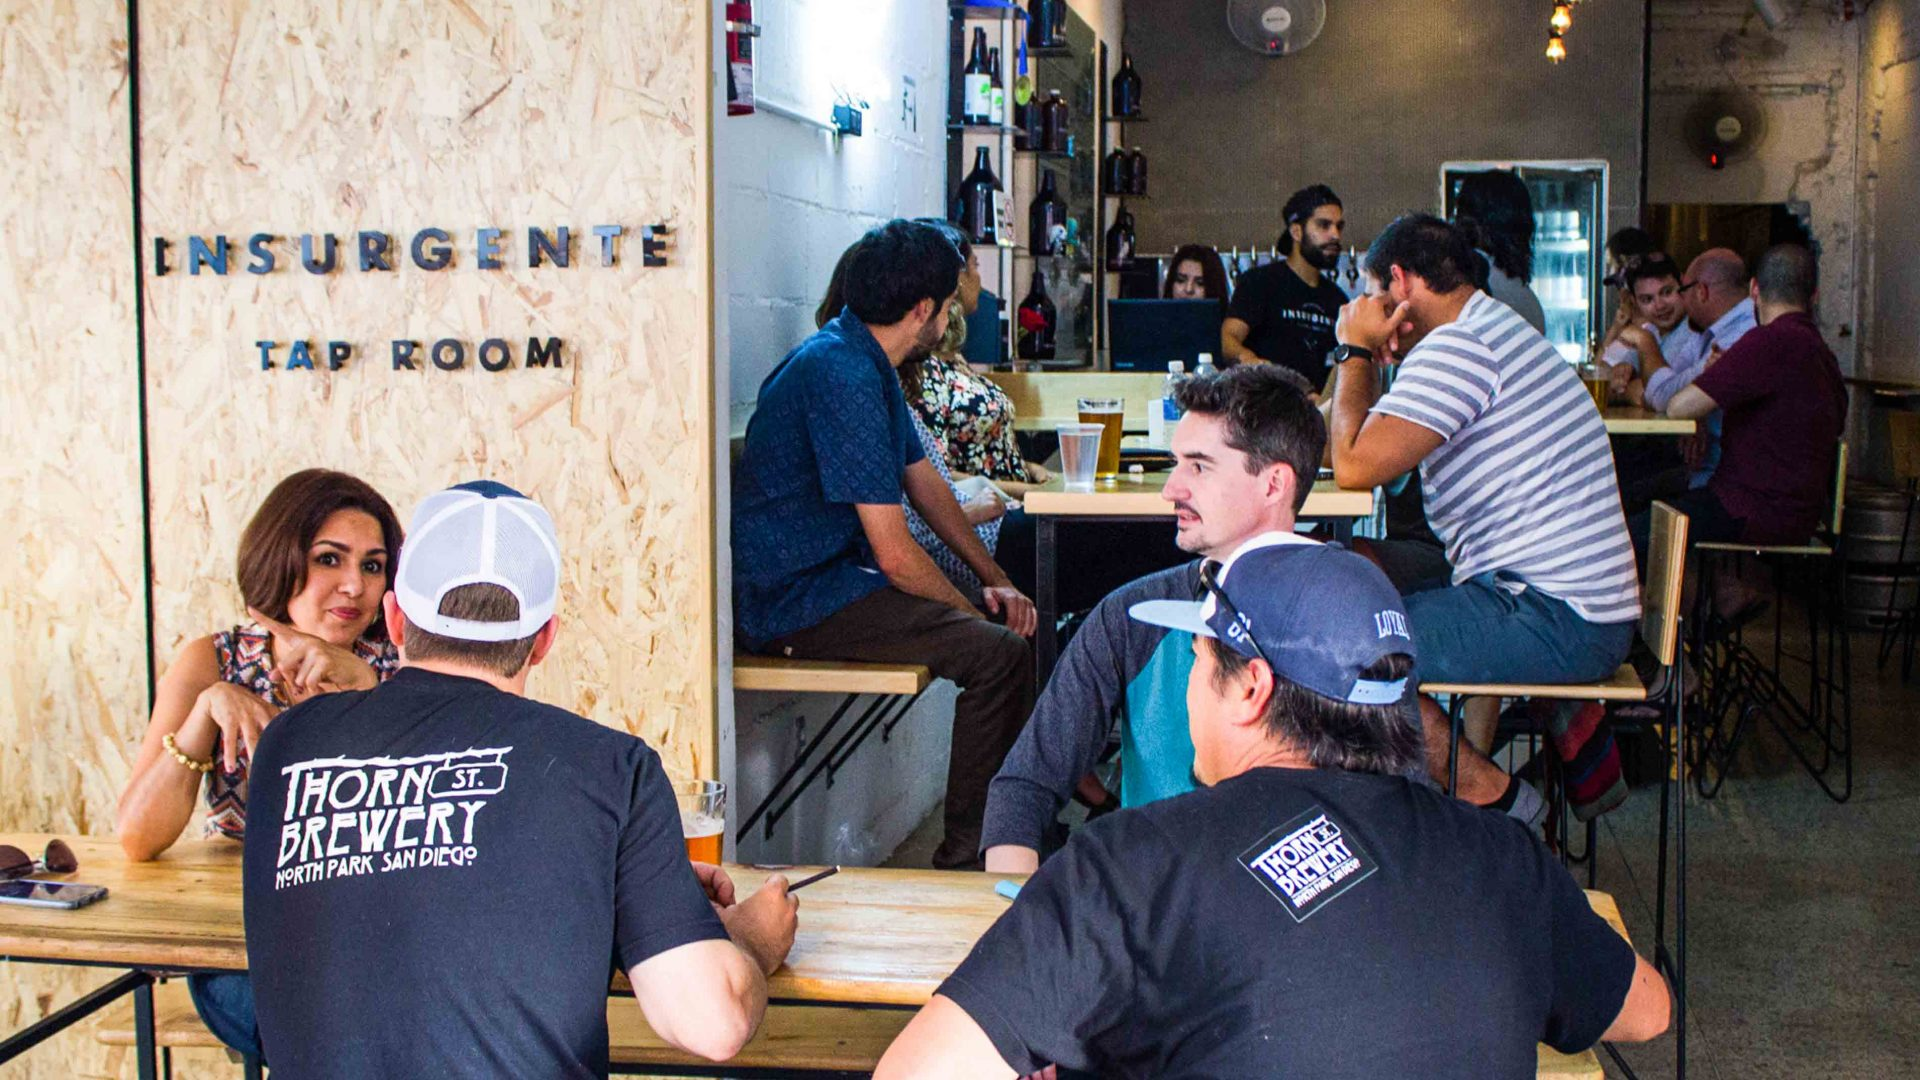 Influenced by San Diego's craft brewery scene, Insurgentes is part of the new craft brewery scene in Tijuana.